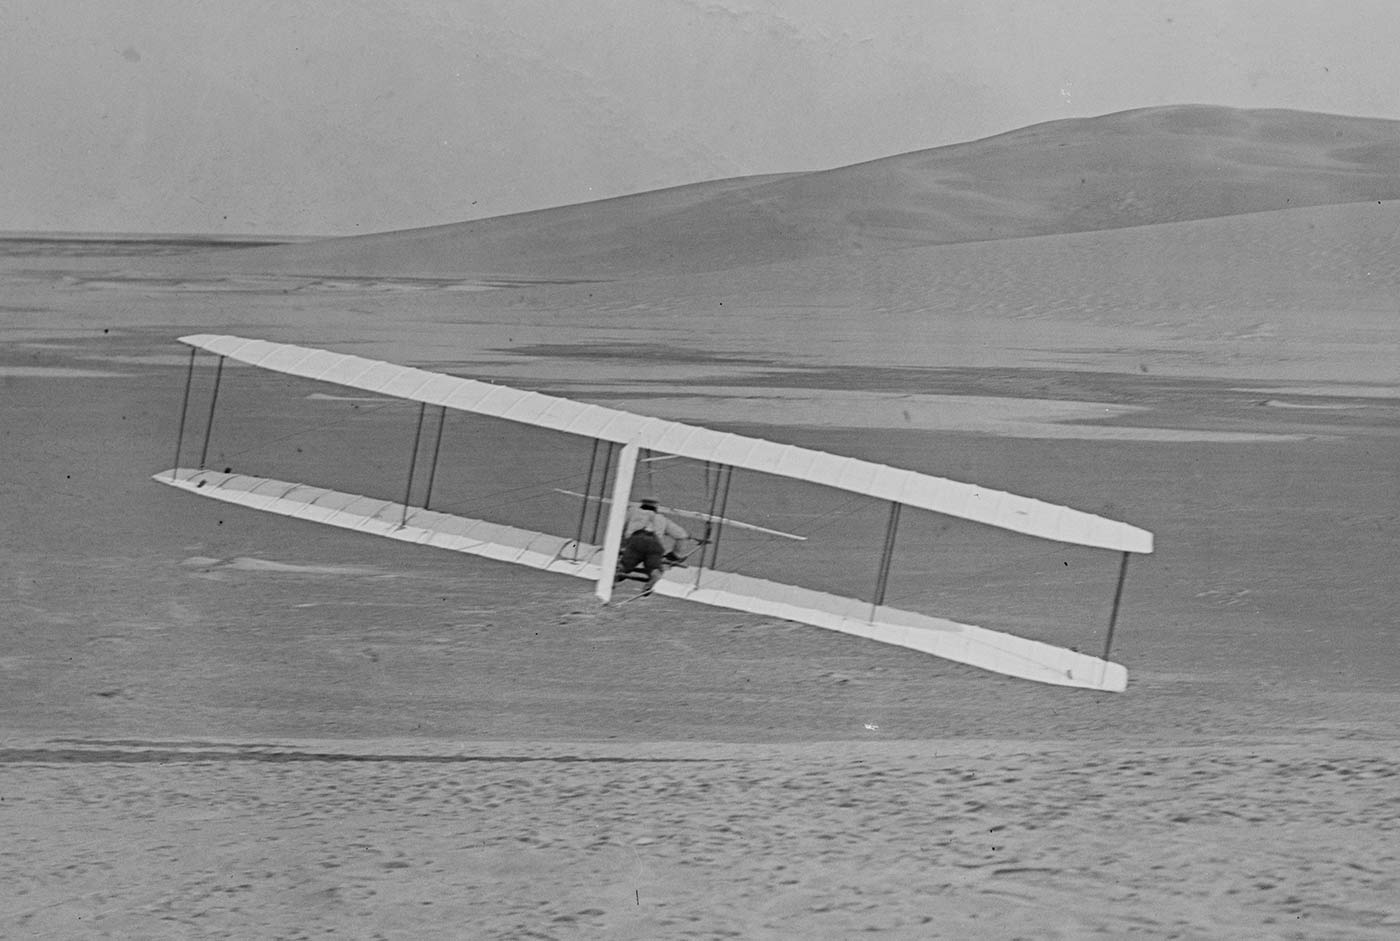 Rear view of Wilbur Wright making a right turn with the Wright Glider, 1902.